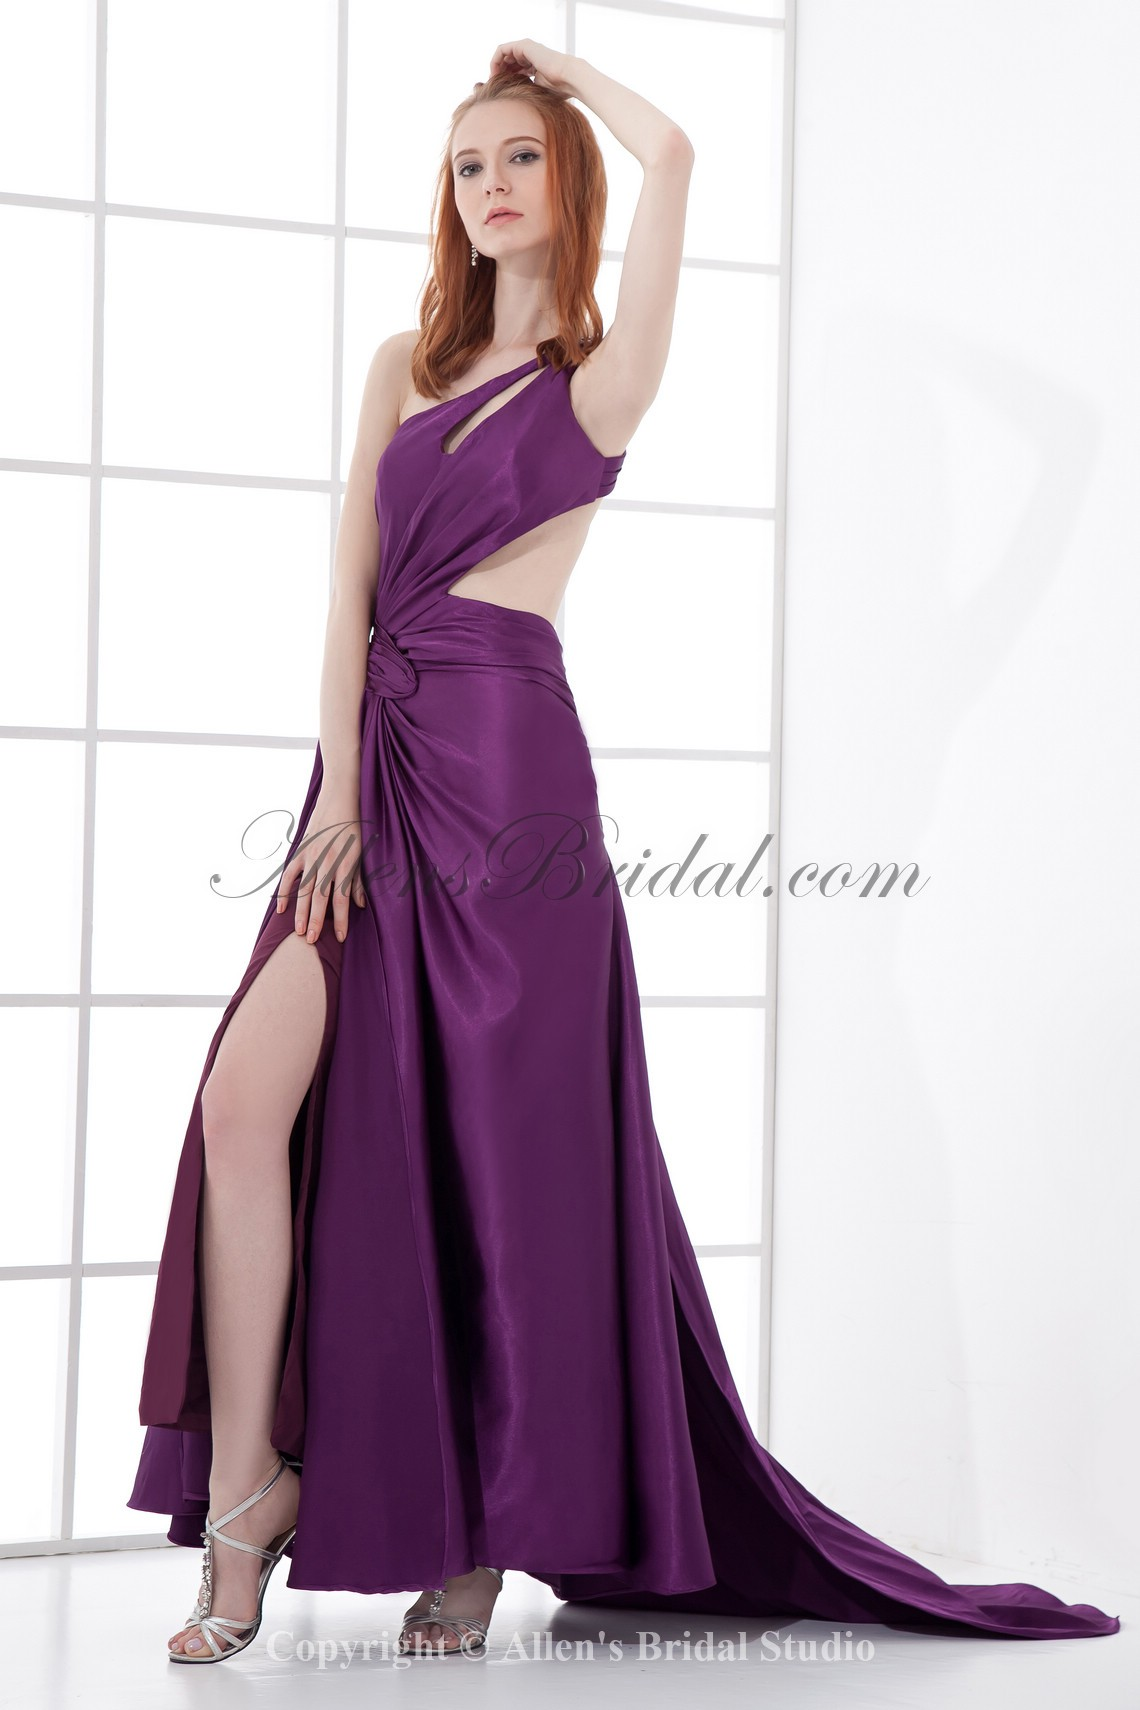 /66-522/satin-one-shoulder-ankle-length-a-line-prom-dress.jpg